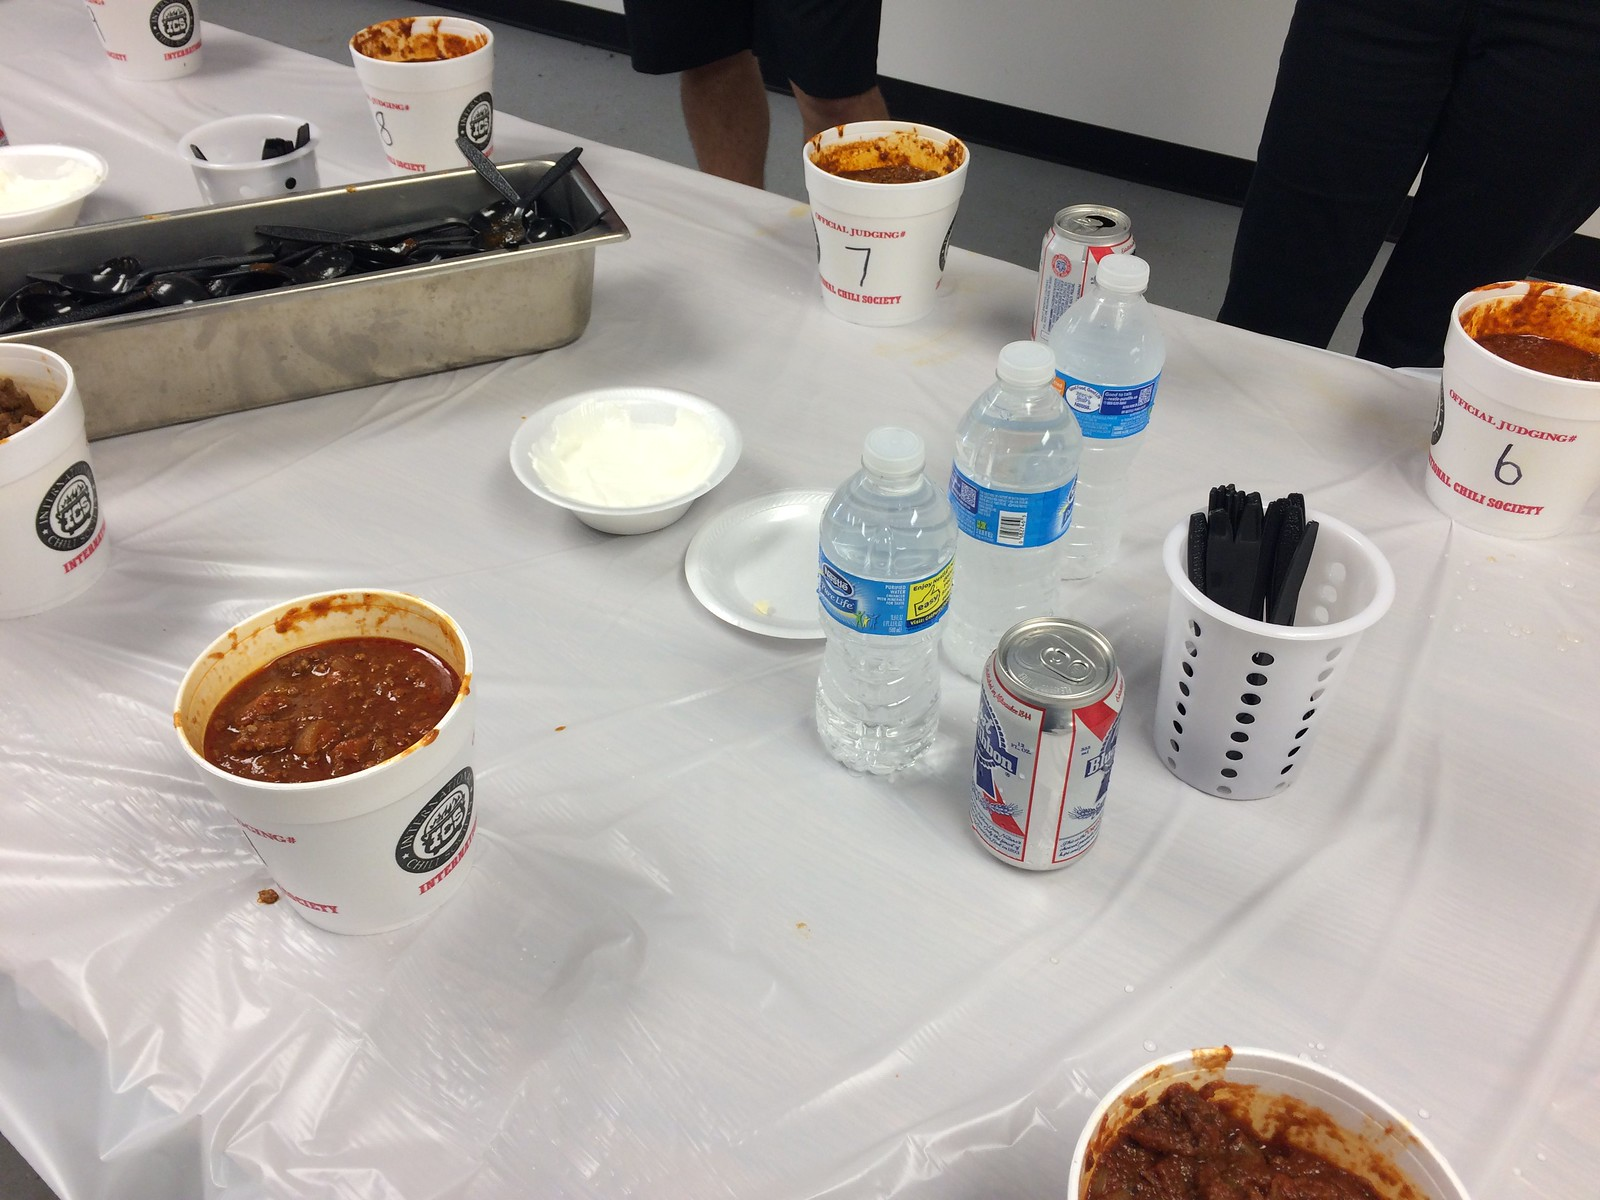 Heat in the hills chili cook off